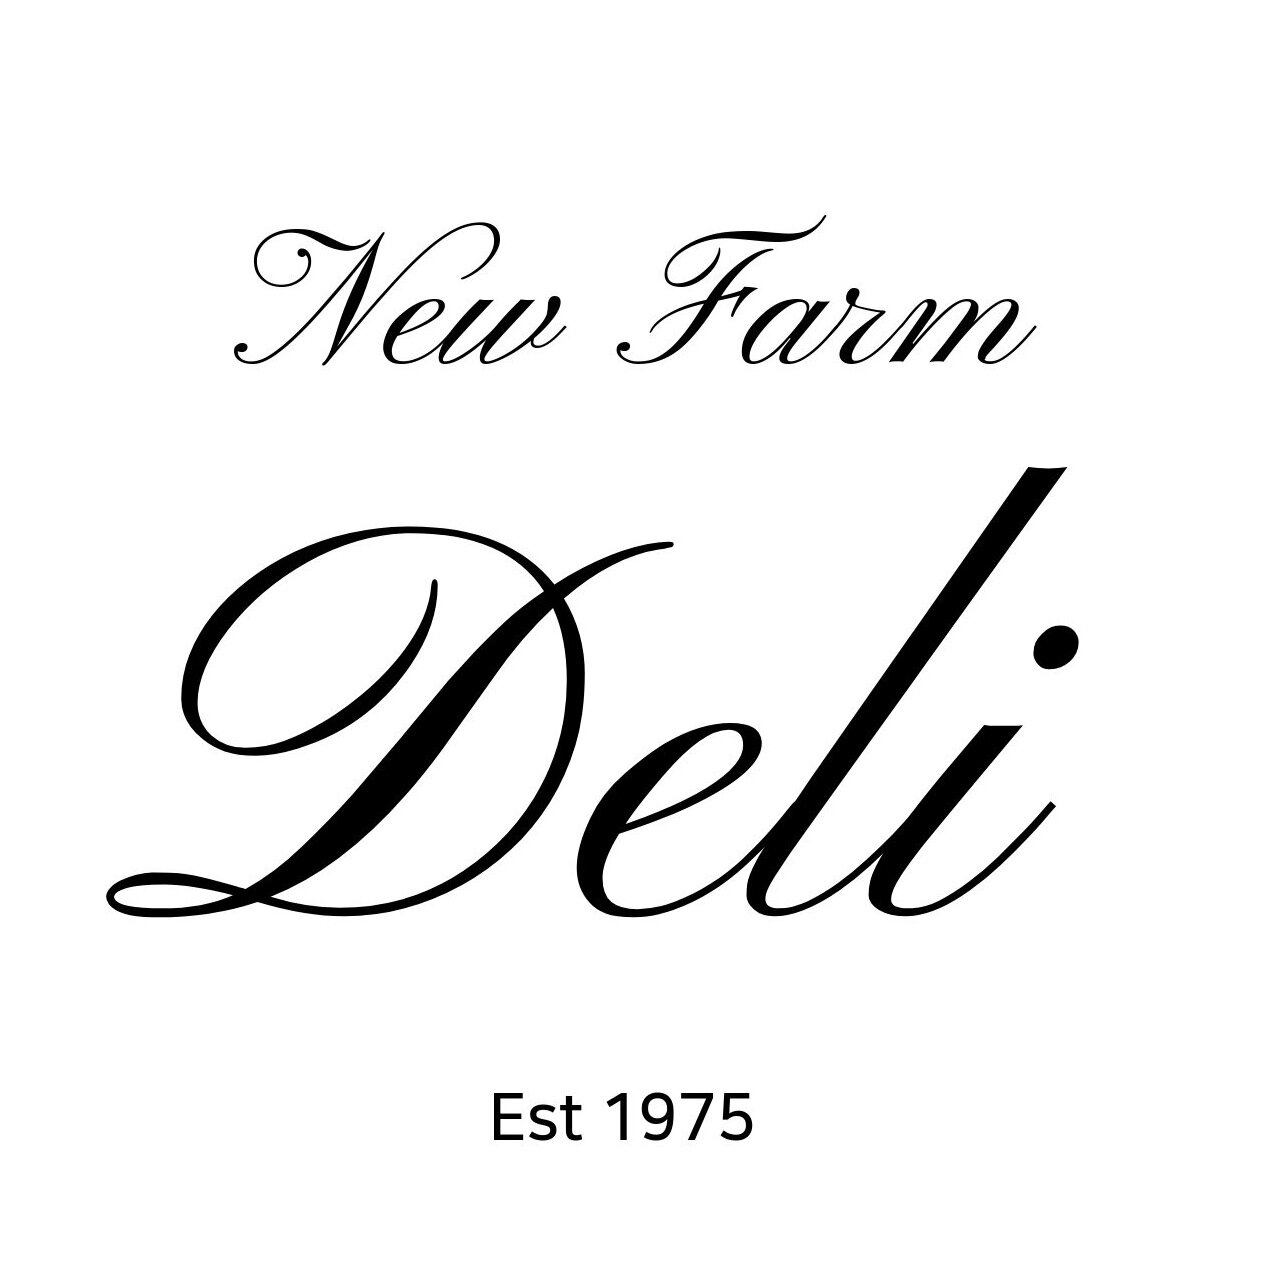 New Farm Deli